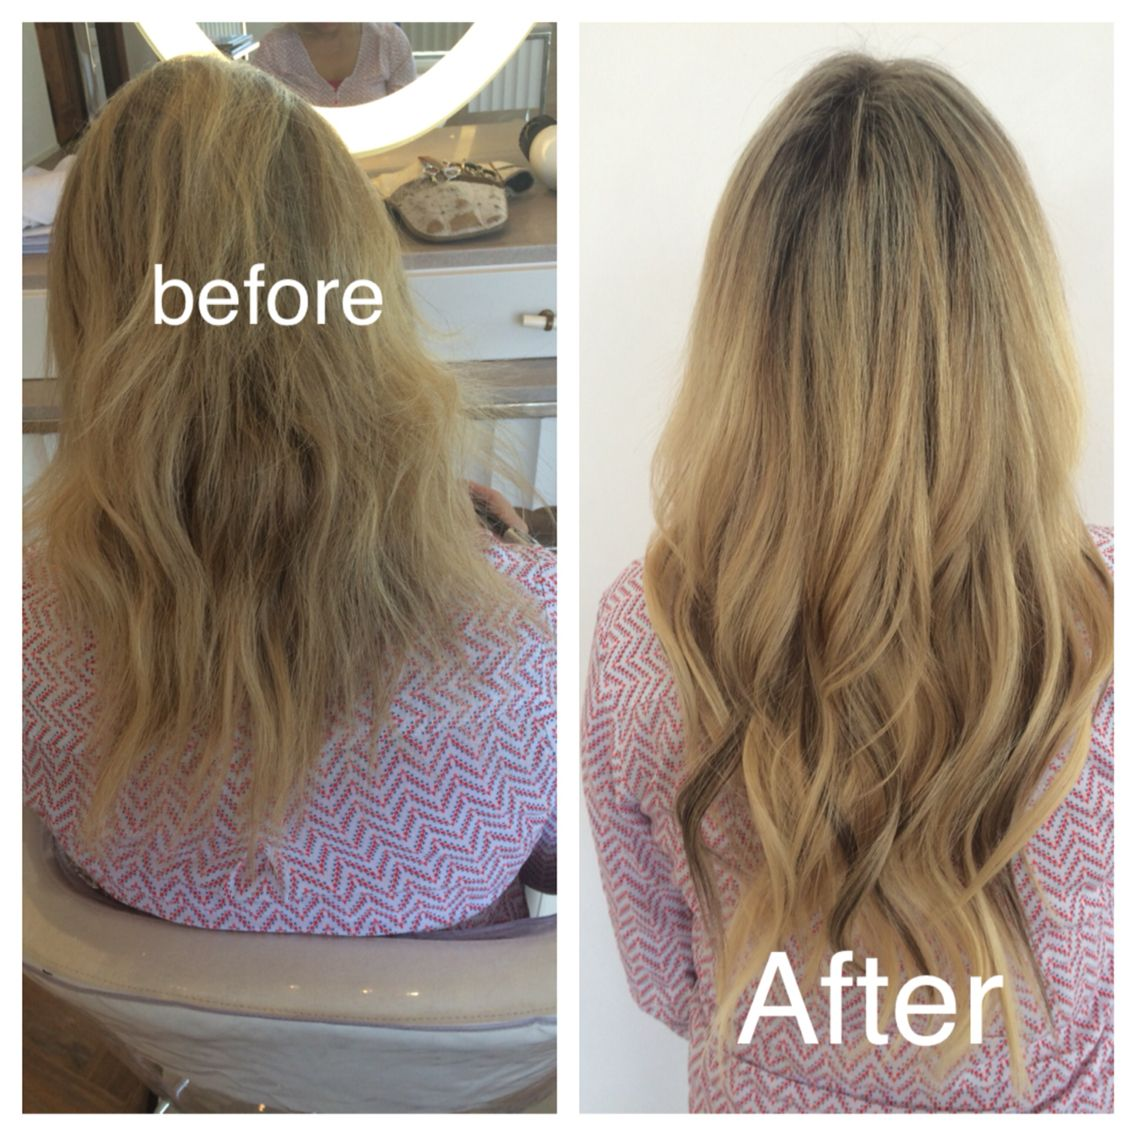 Natural Beaded Row Hair Extensions And Melted Balayage By Amber